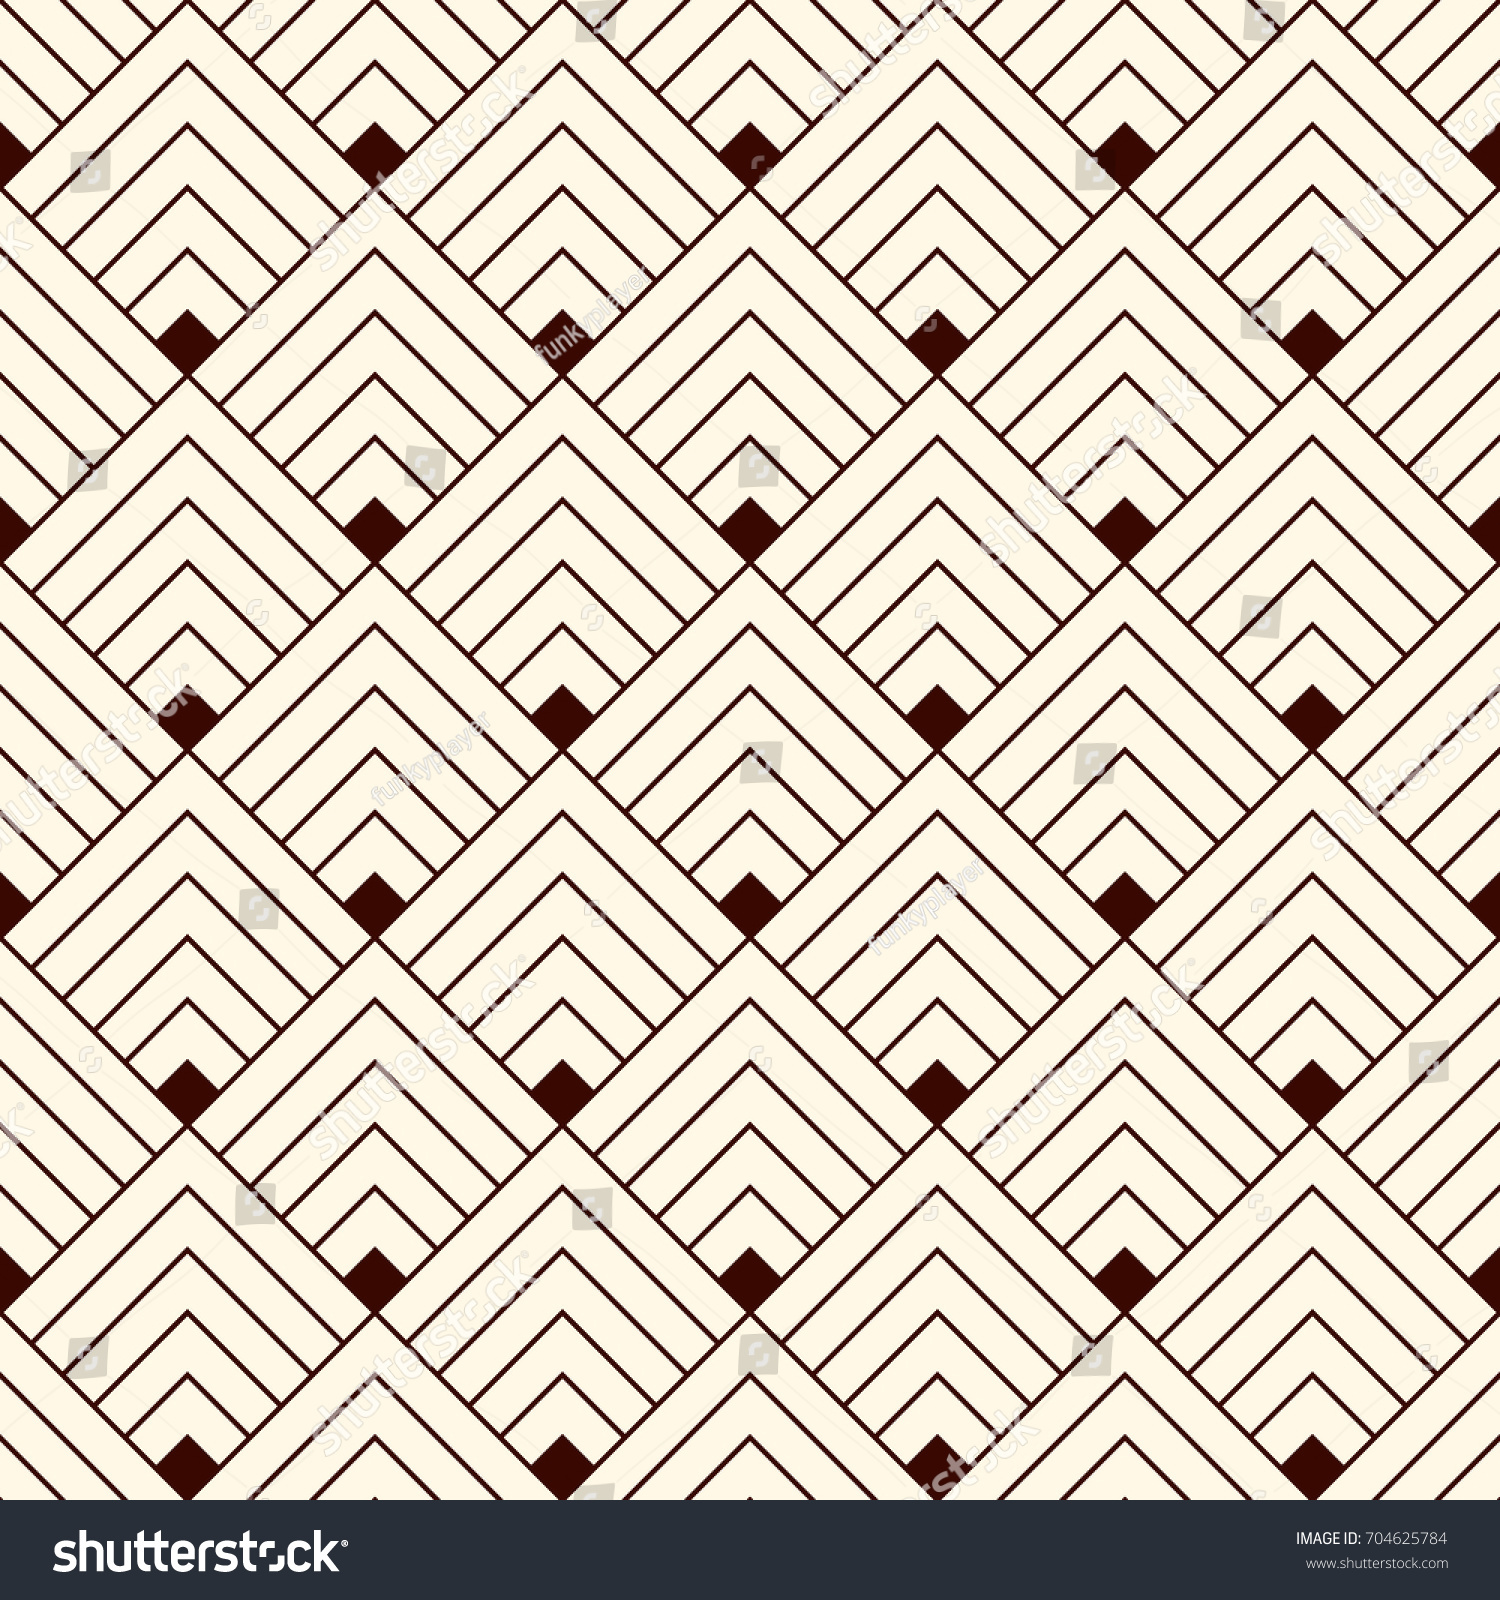 Popular Wallpaper Mountain Pattern - stock-vector-repeated-chevrons-abstract-wallpaper-asian-traditional-ornament-with-scallops-mountain-stamp-704625784  Best Photo Reference_273810.jpg